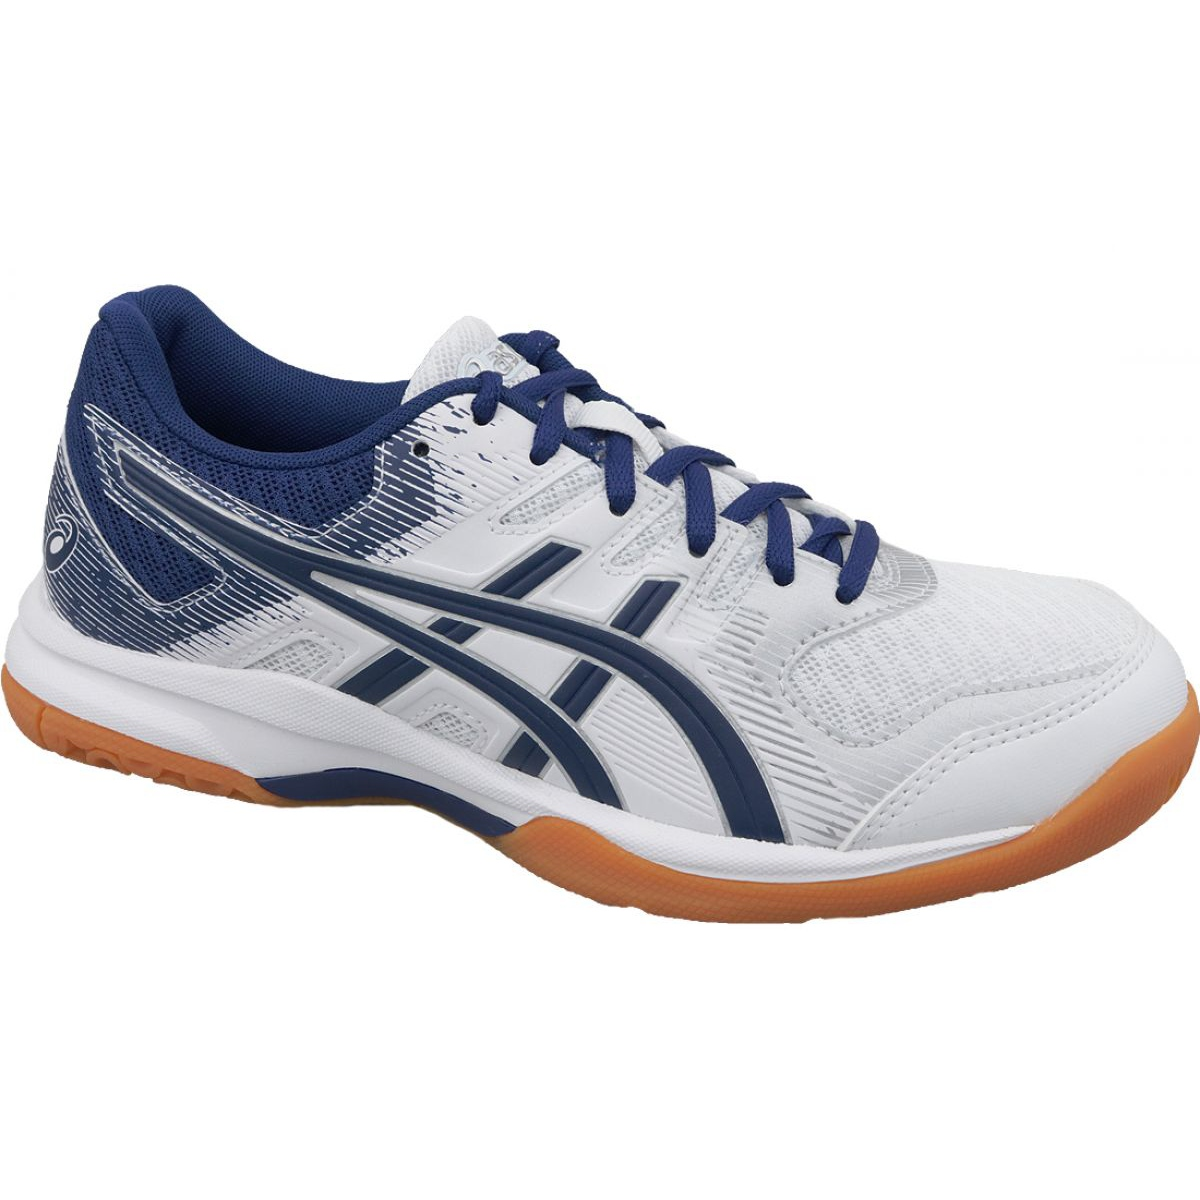 Details about Asics Gel Rocket 9 volleyball shoes 1072A034 102